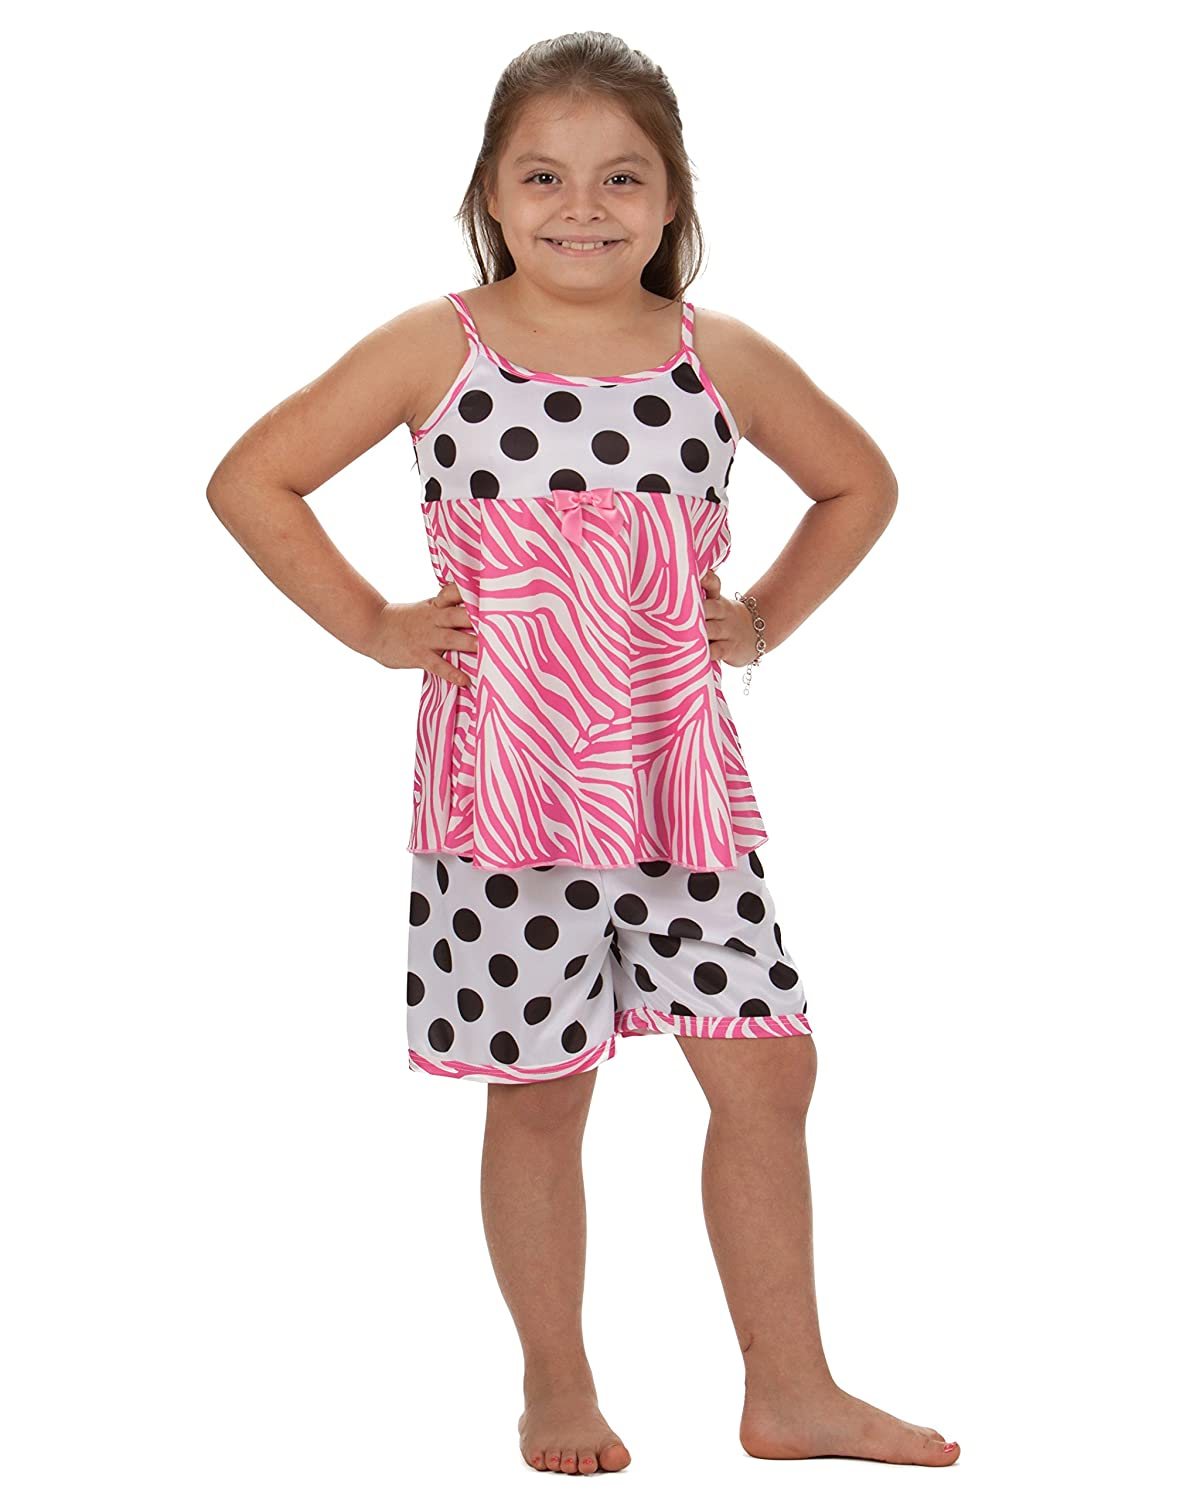 Laura Dare Little Girls Connect The Dots Strappy PJ Short Set